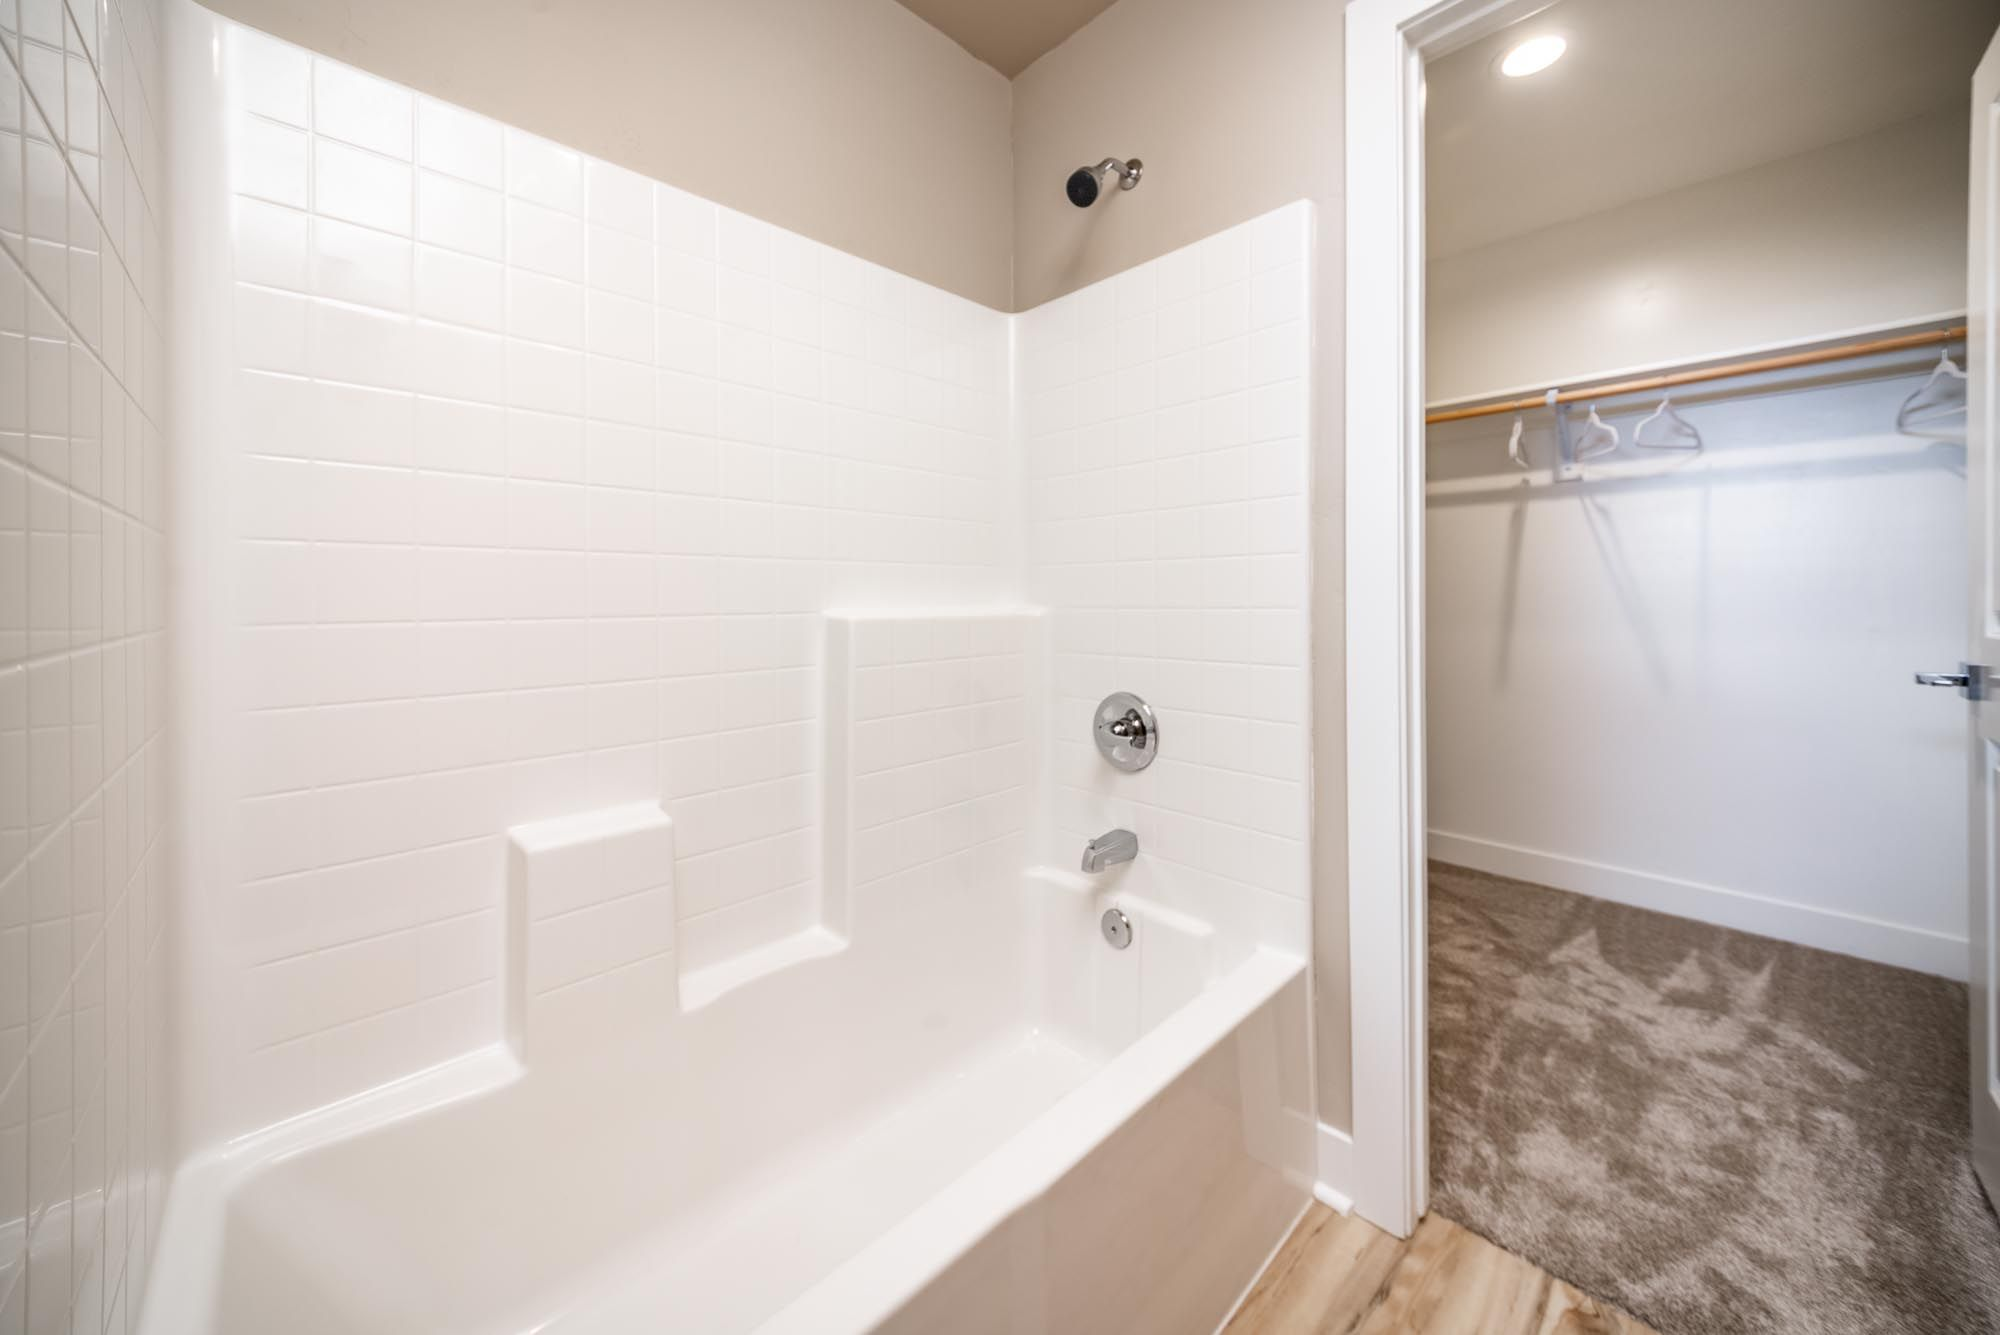 Bathroom featured in the Plan 1 By Solid Homes in Flagstaff, AZ